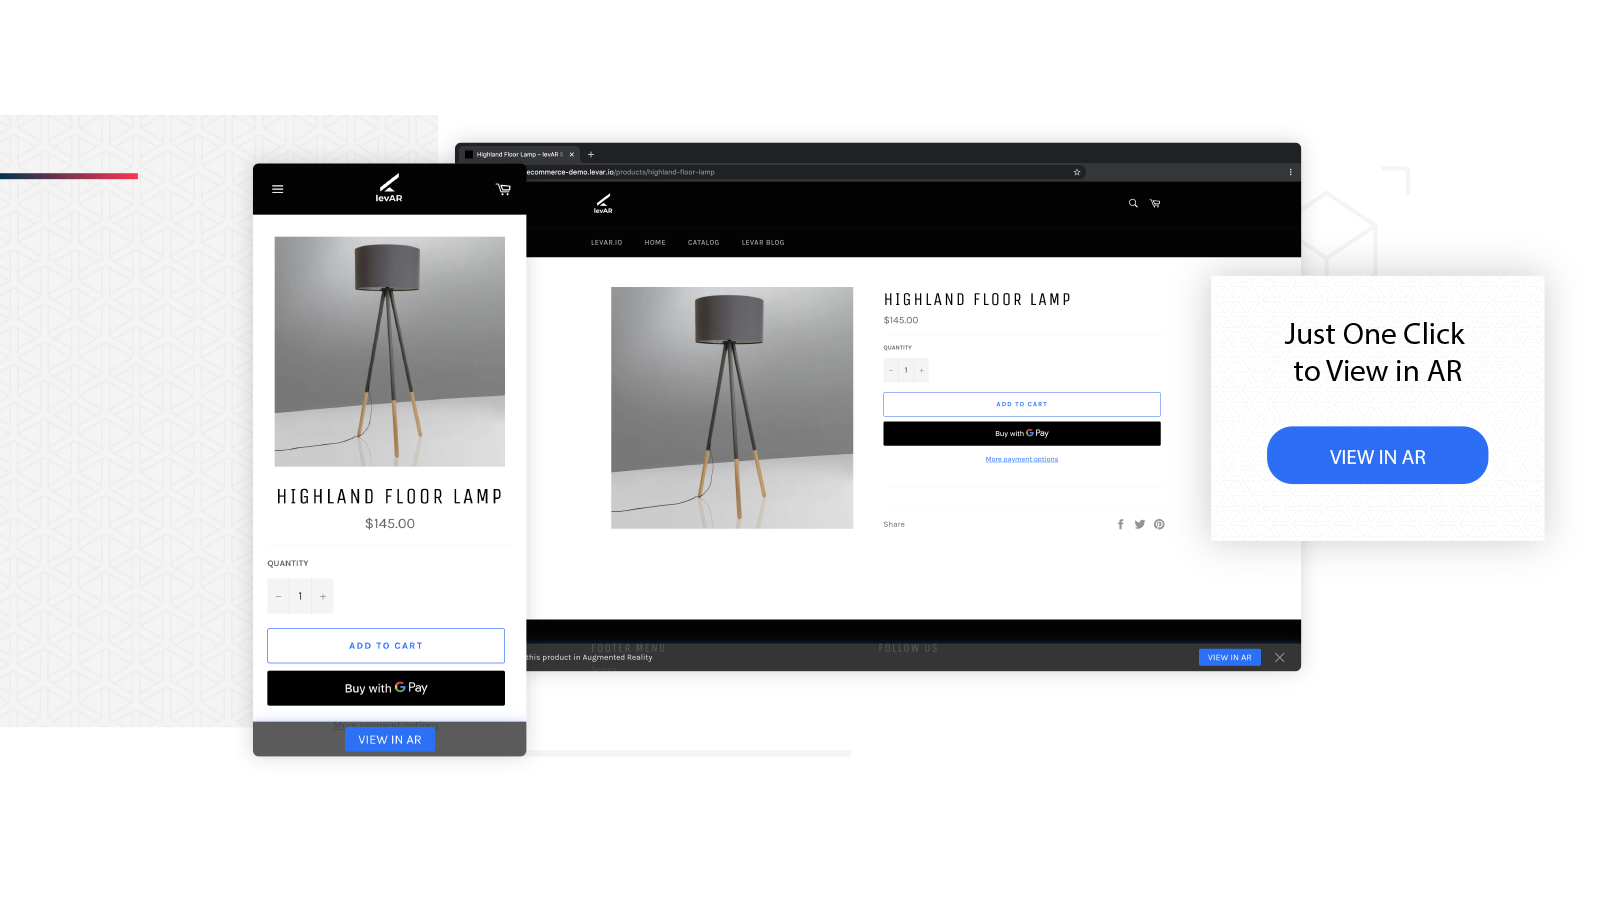 Customers can view the product in the levAR Viewer